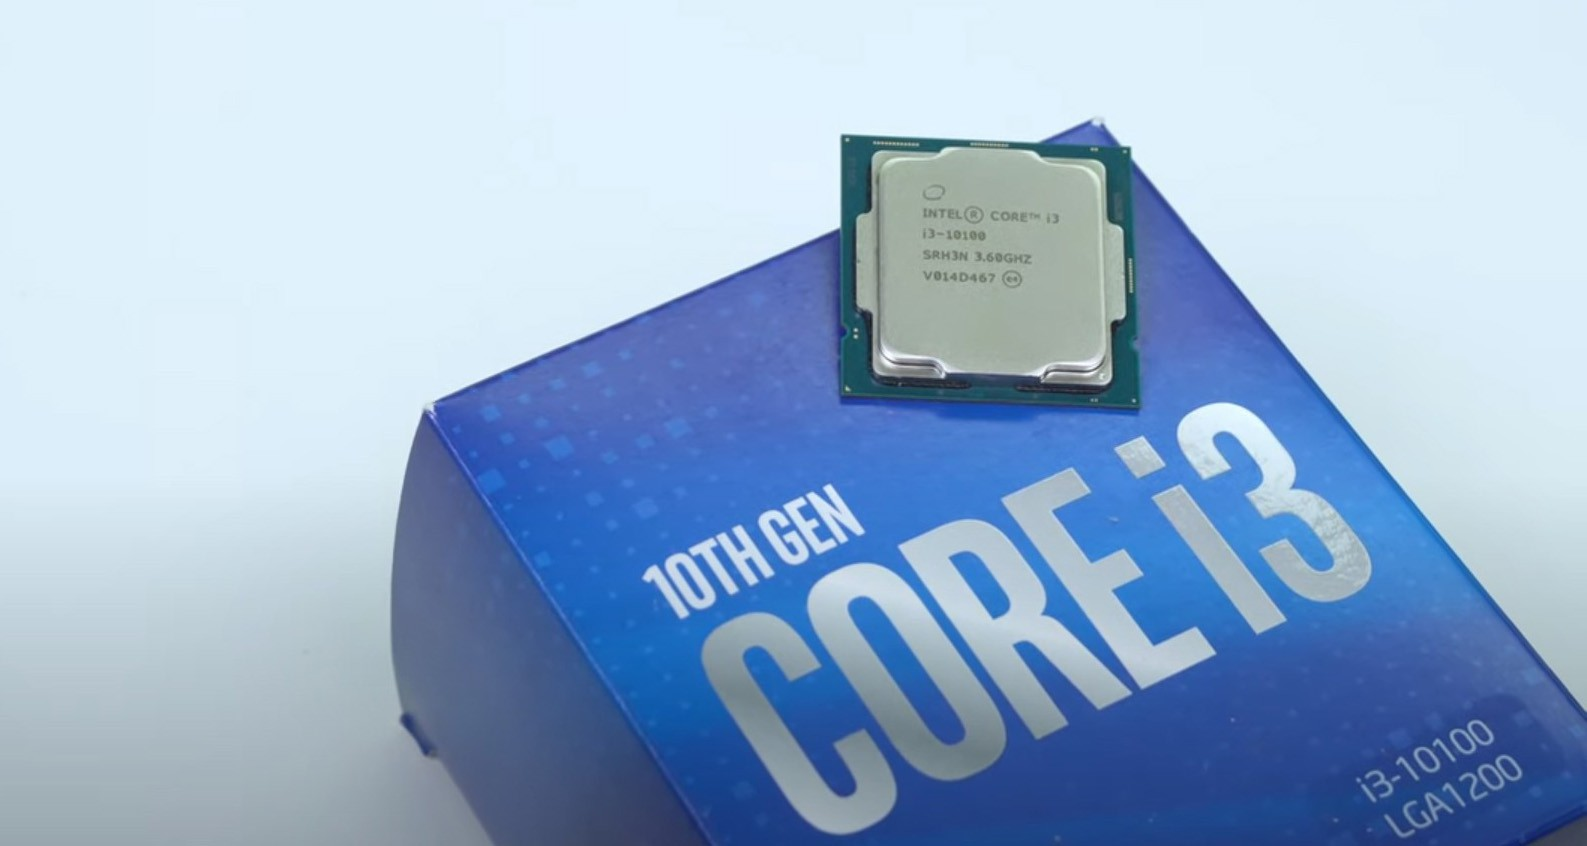 CPU Intel Core i3 10100 (3.6GHz turbo up to 4.3GHz, 4 nhân 8 luồng, 6MB Cache, 65W)